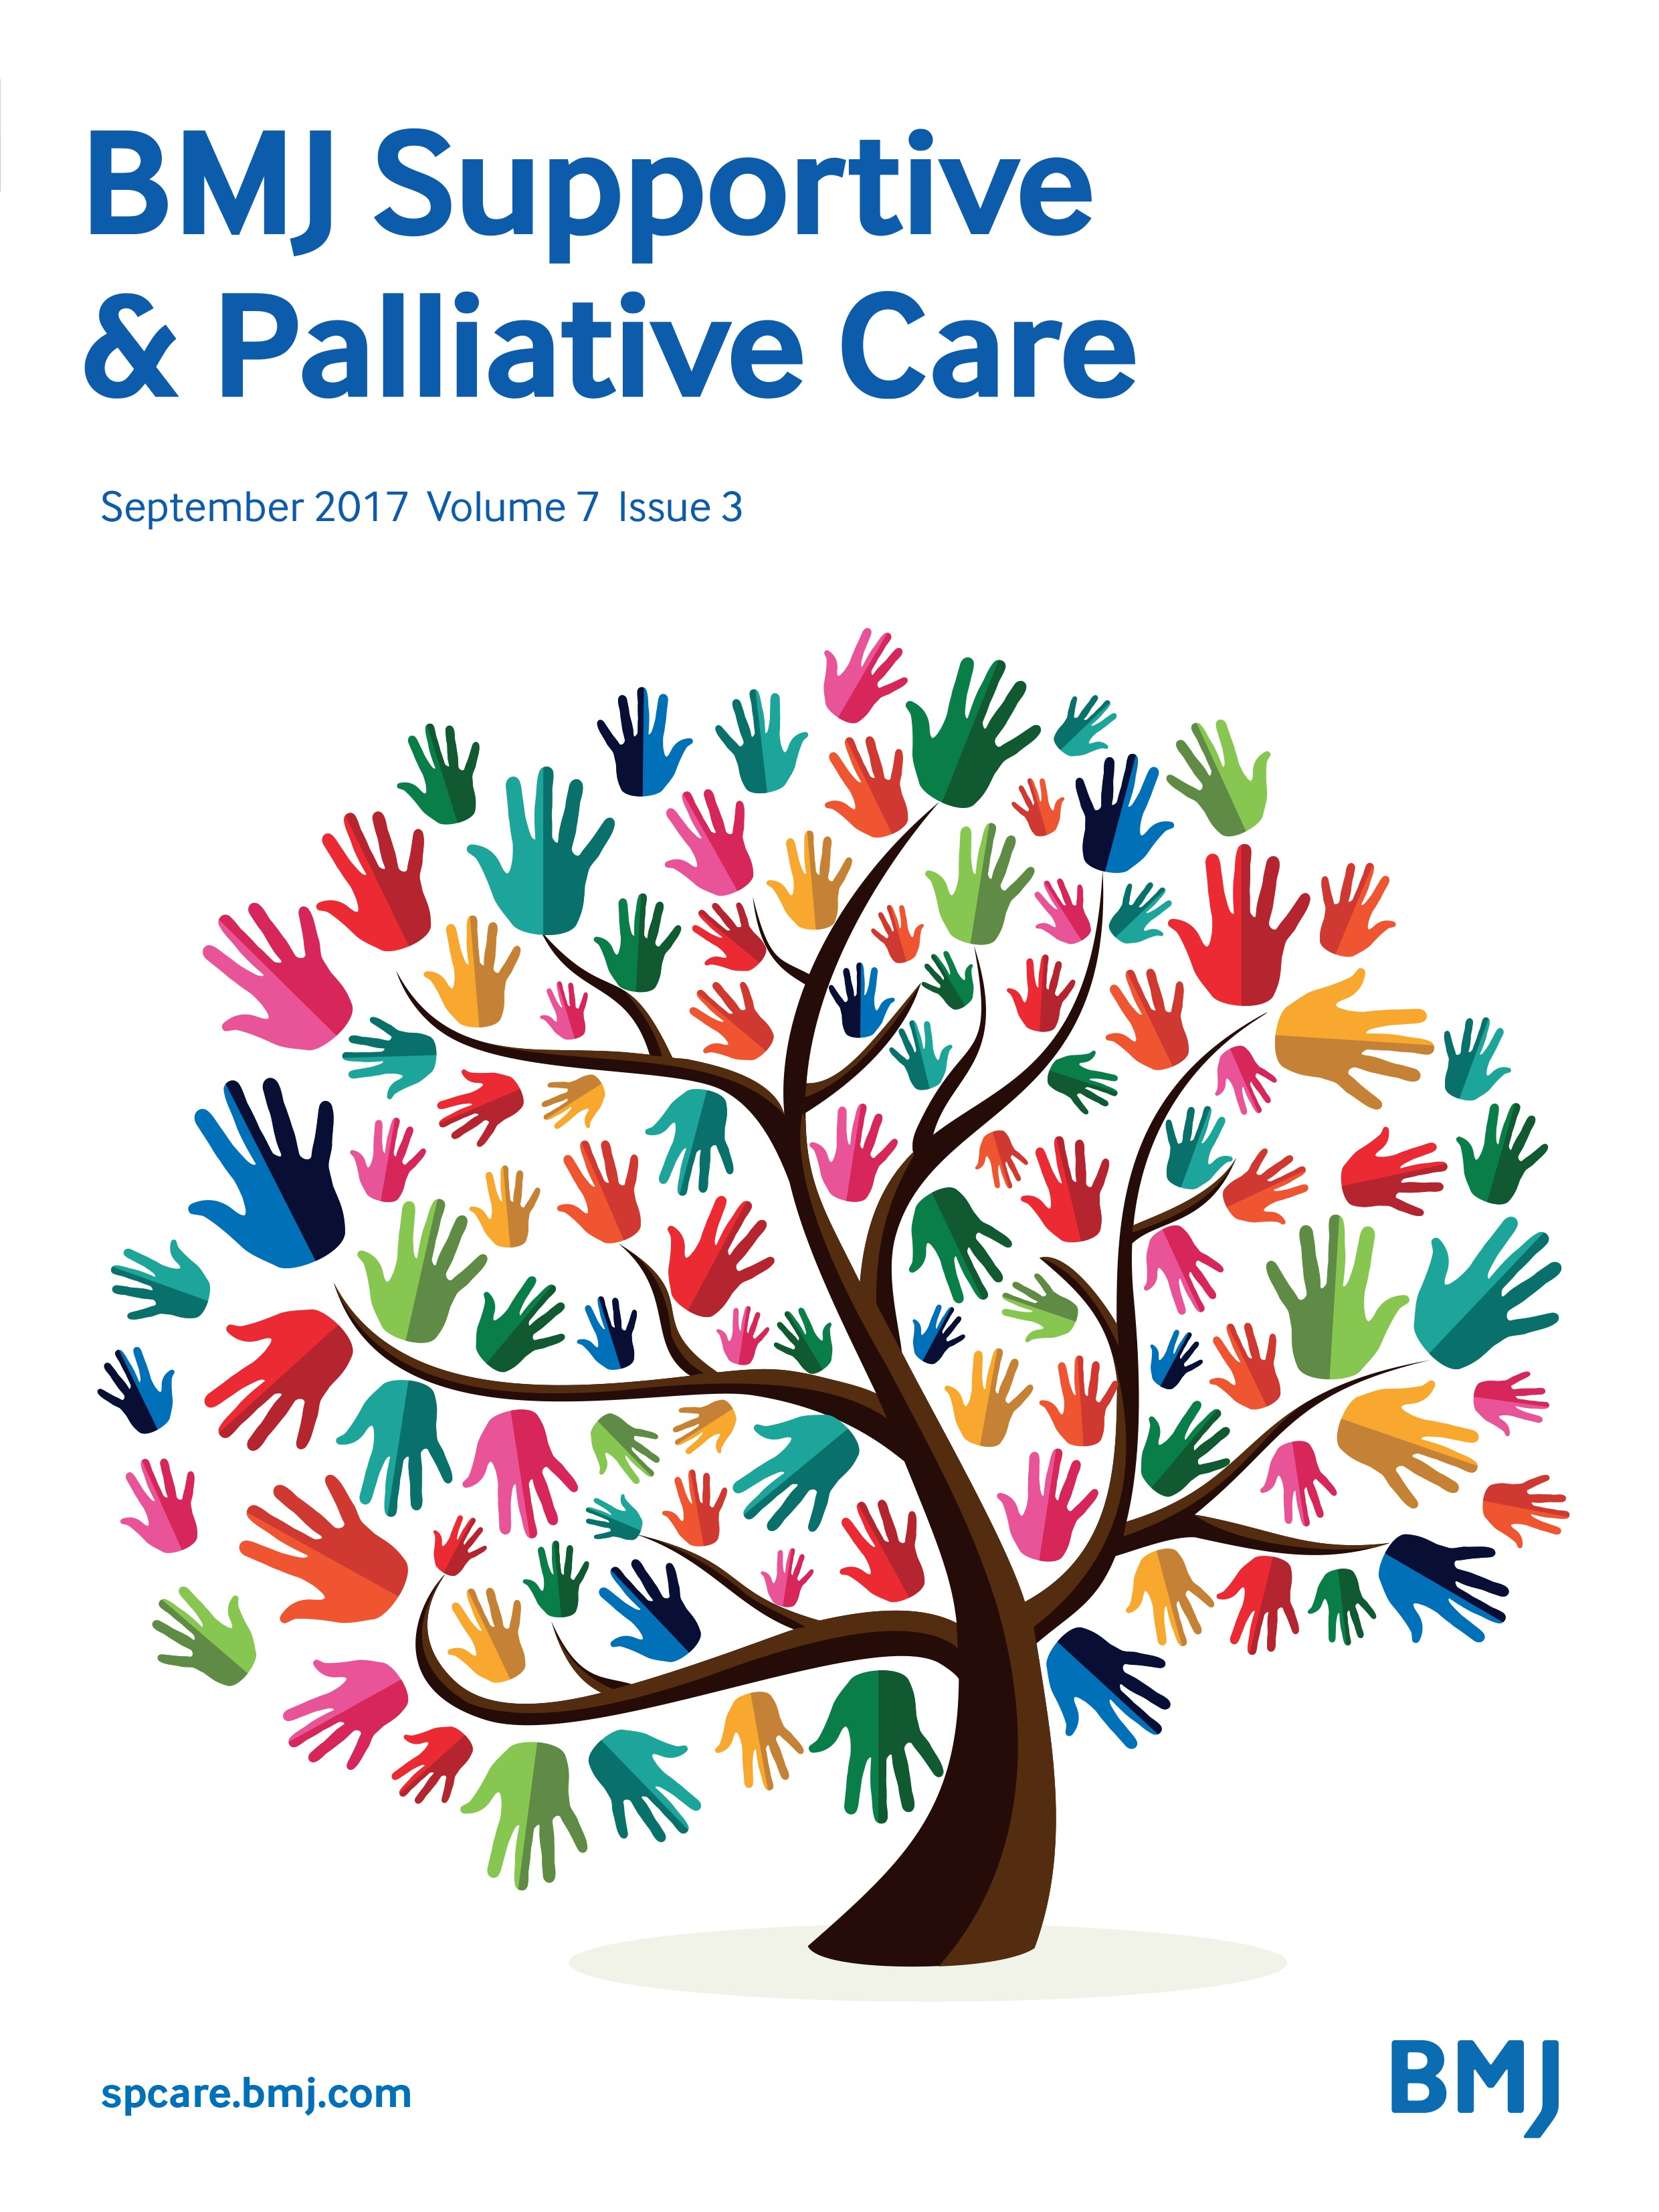 Caring clipart palliative care. International variations in clinical